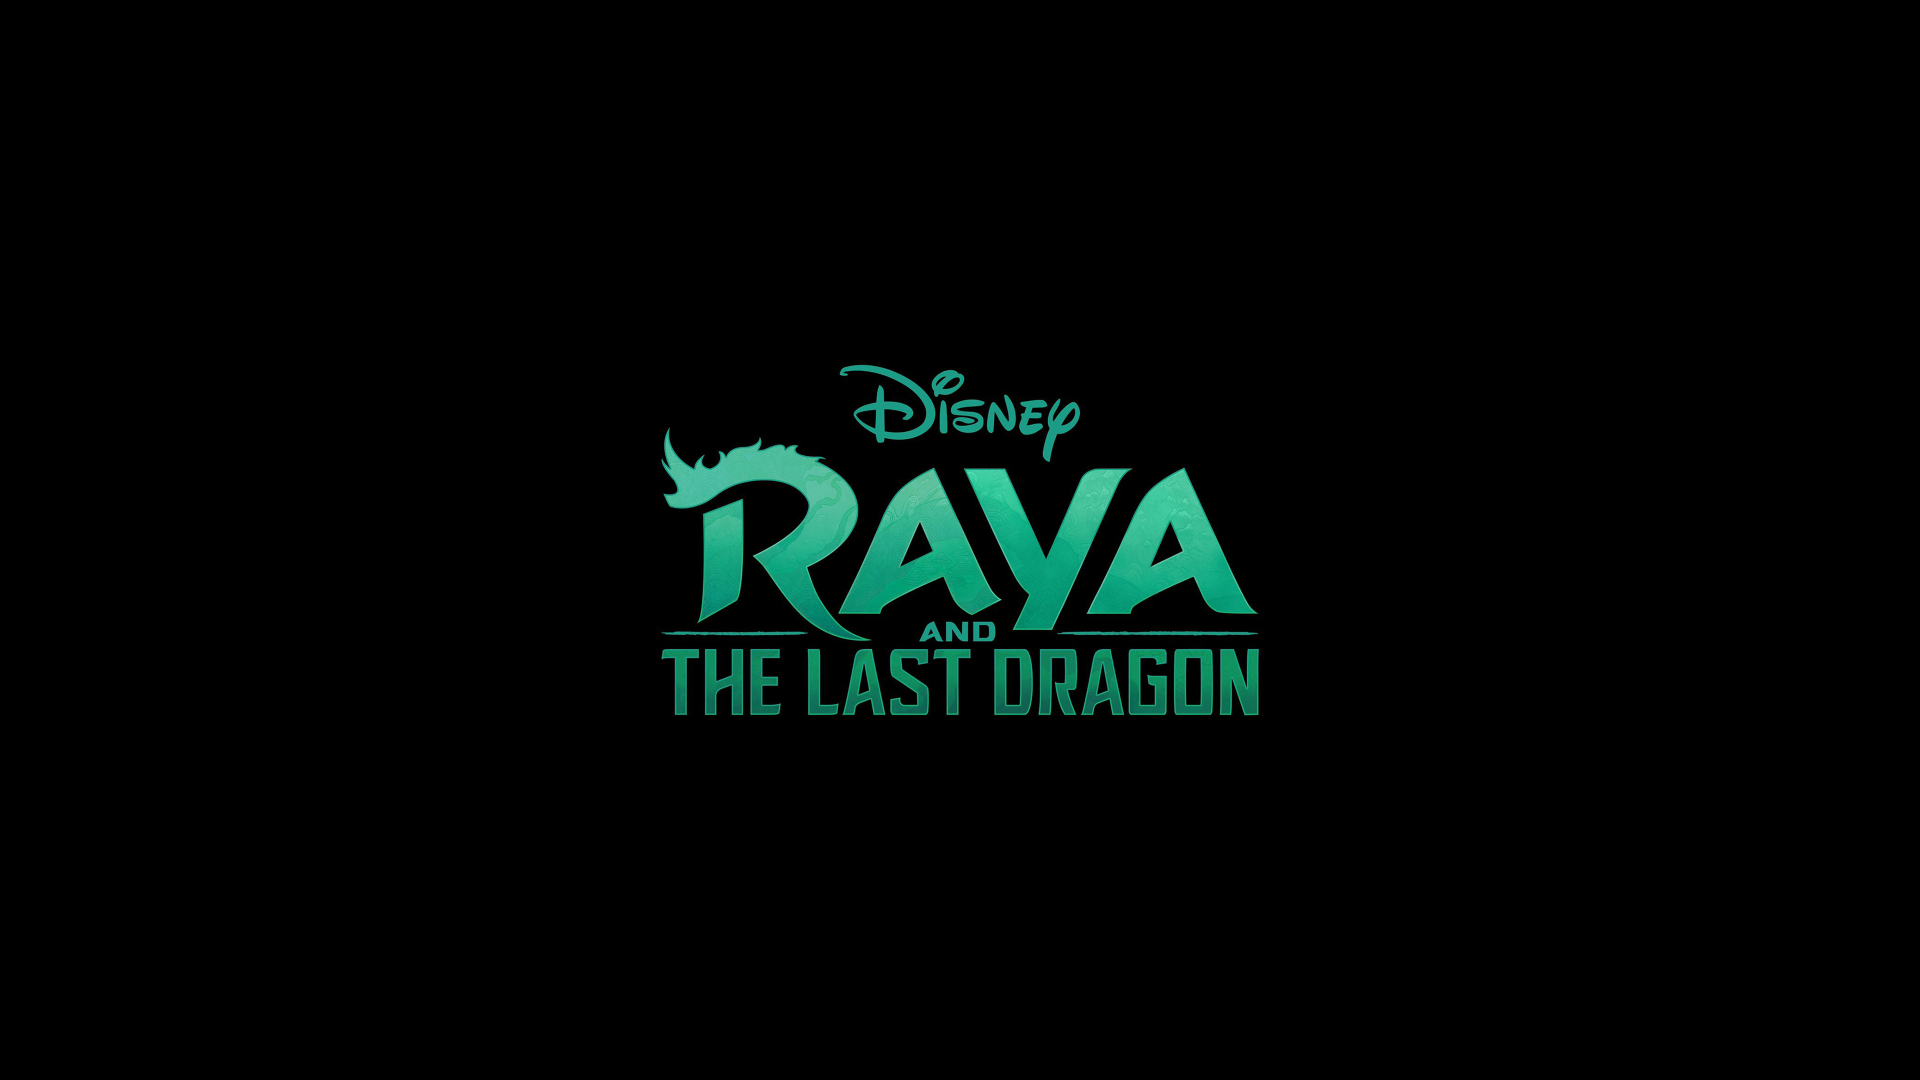 1920x1080 Disney Raya And The Last Dragon Poster 1080p